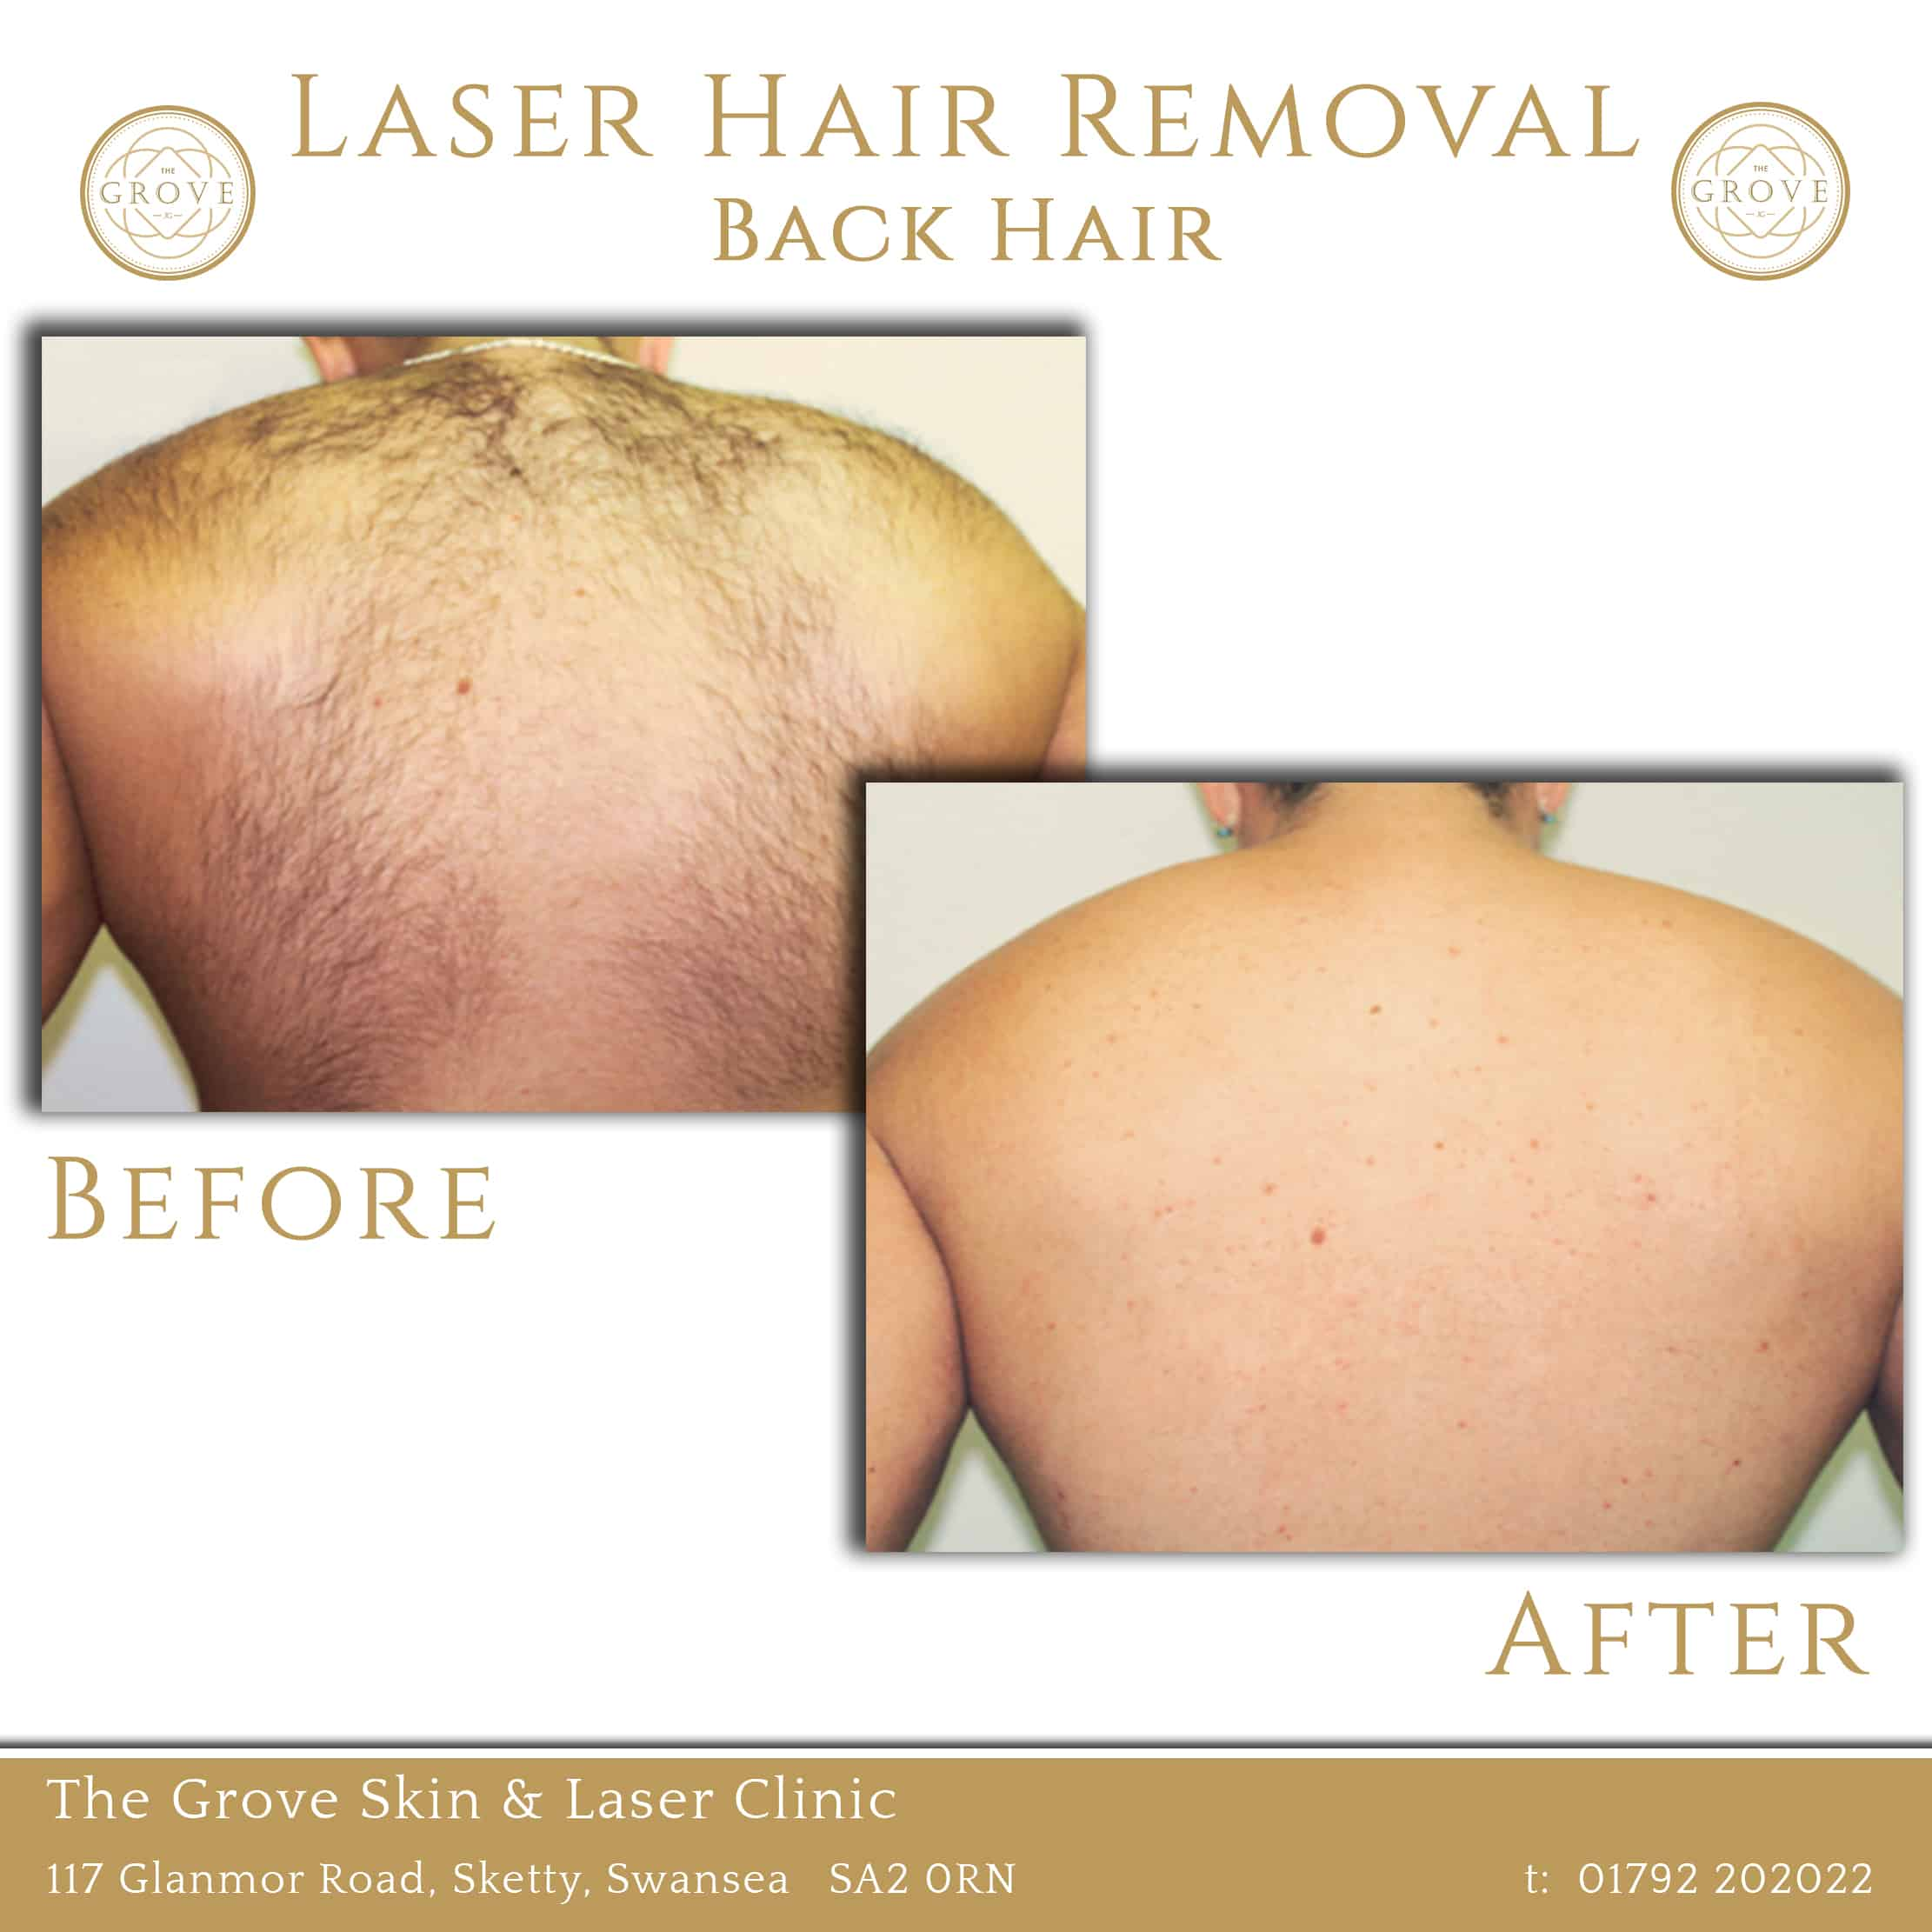 Laser Back Hair Removal Before and After